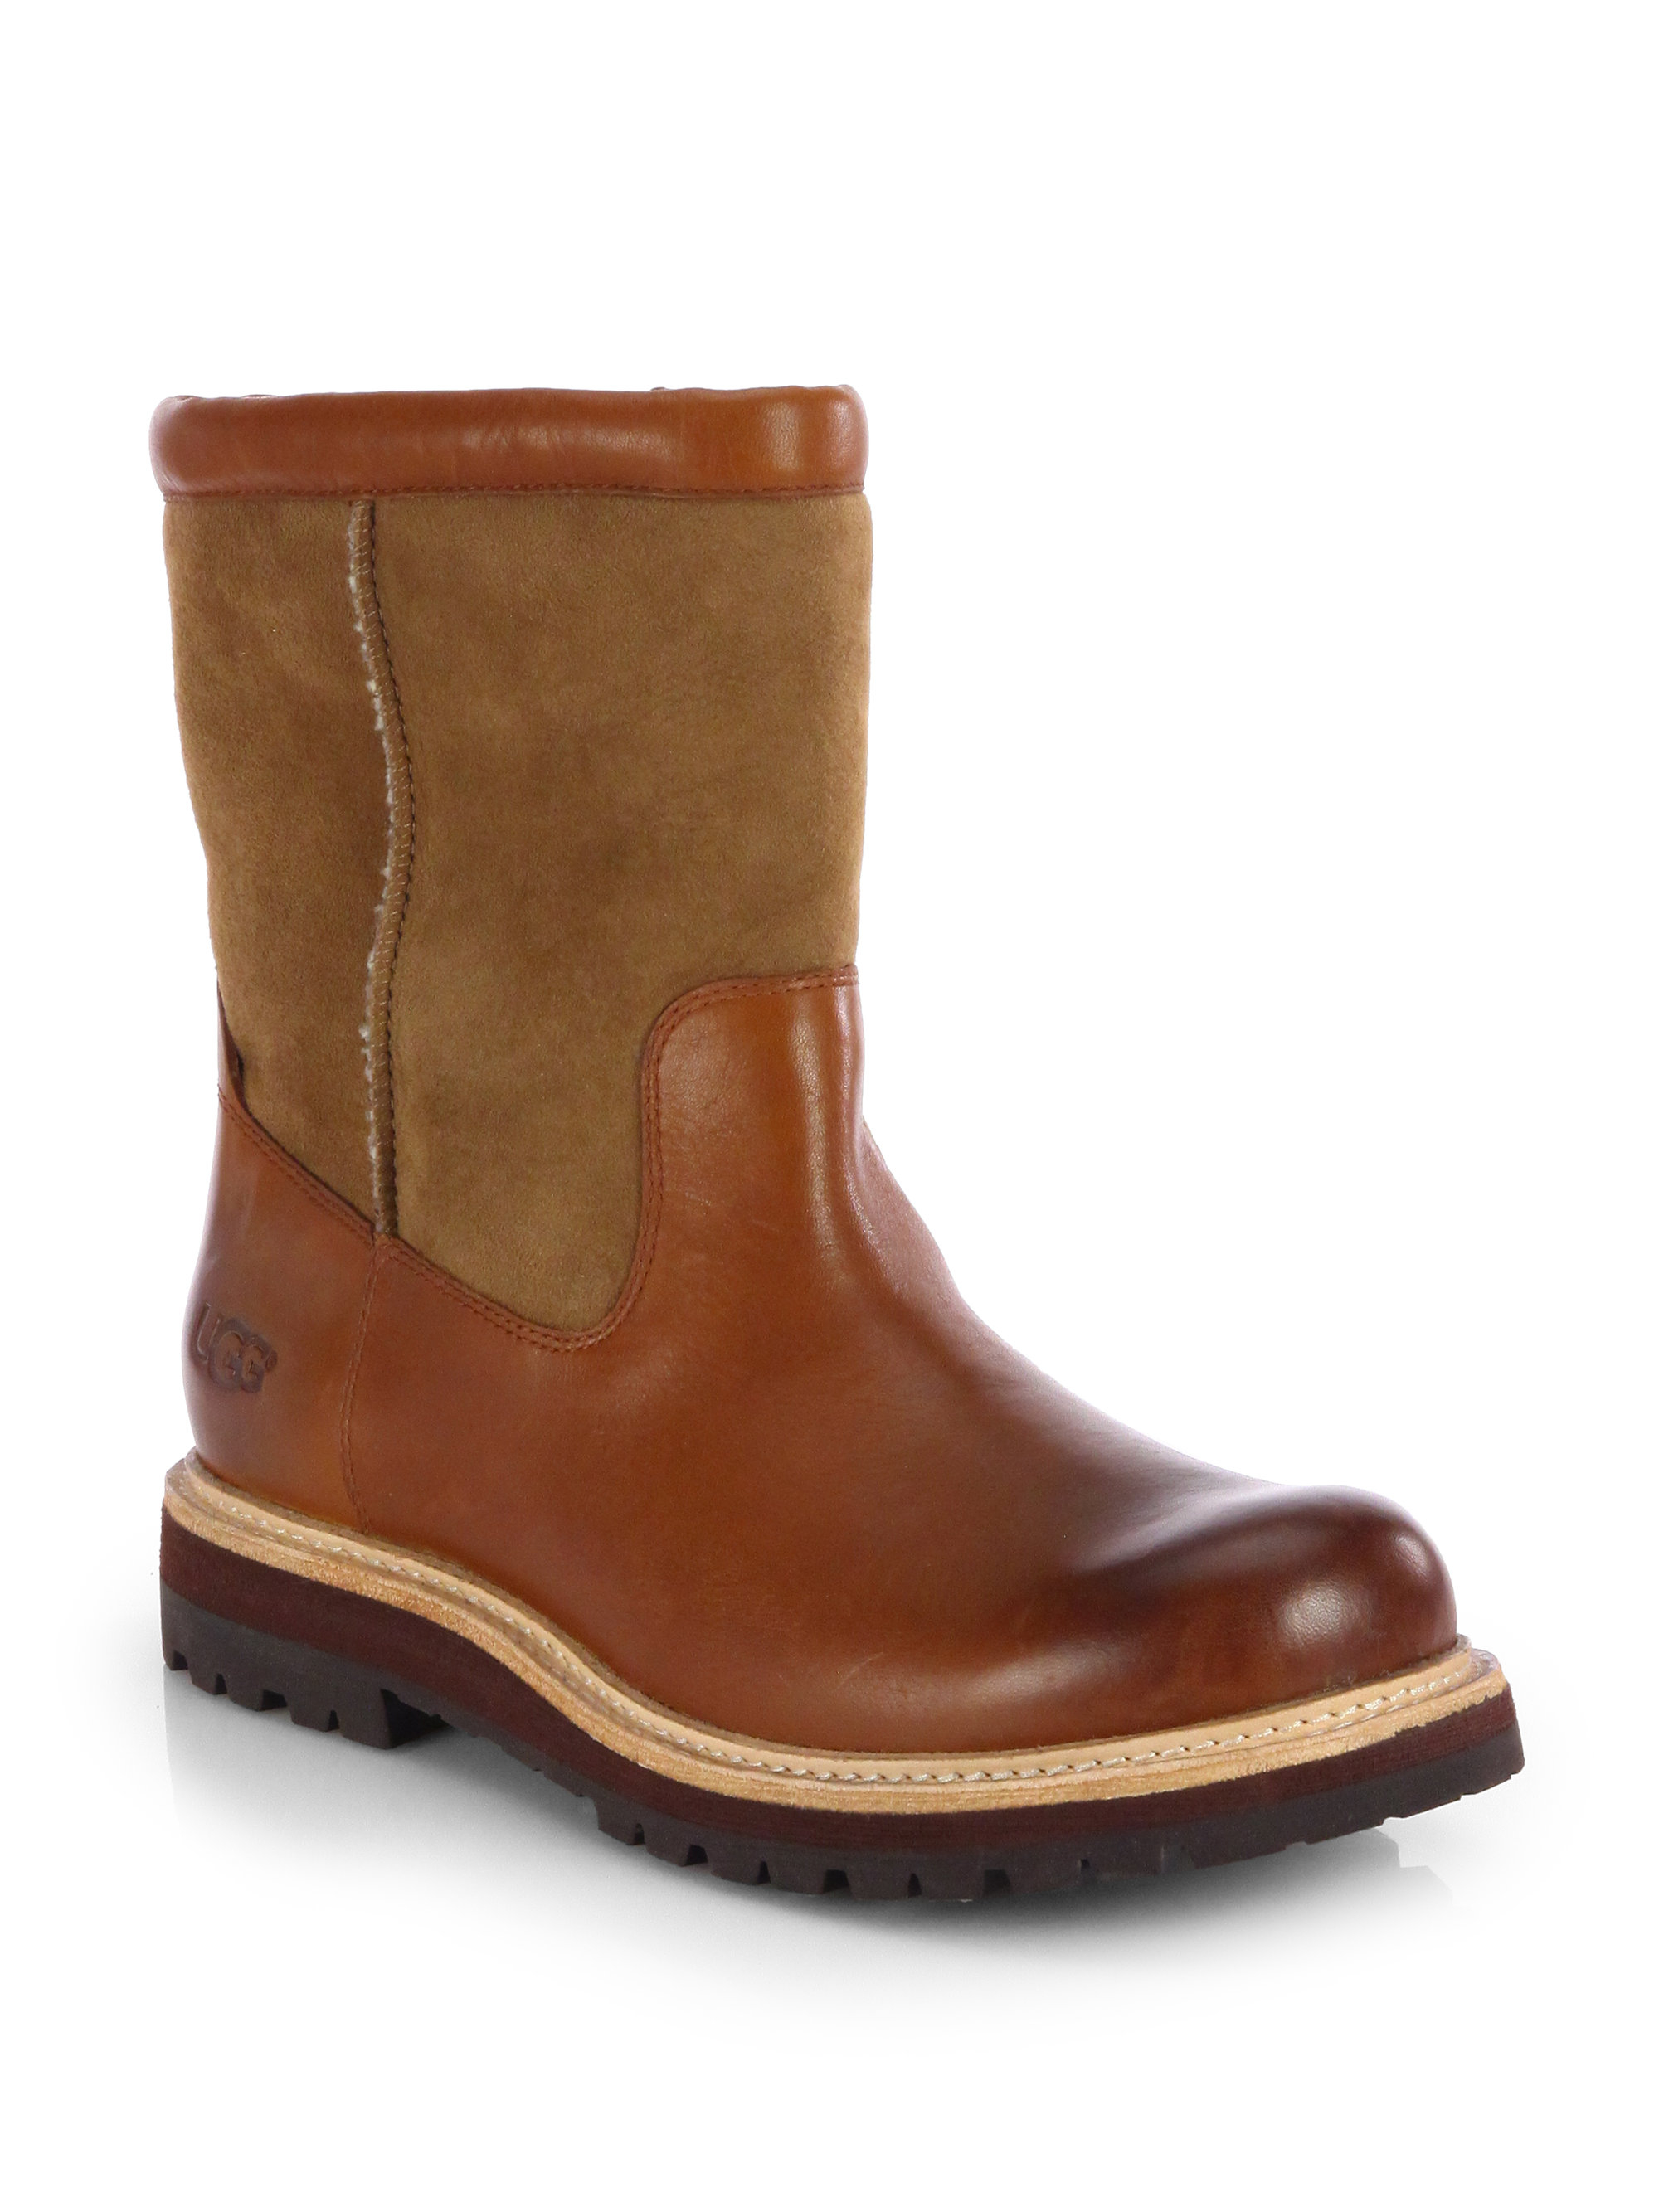 Lyst Ugg Polson Classic Boots In Brown For Men